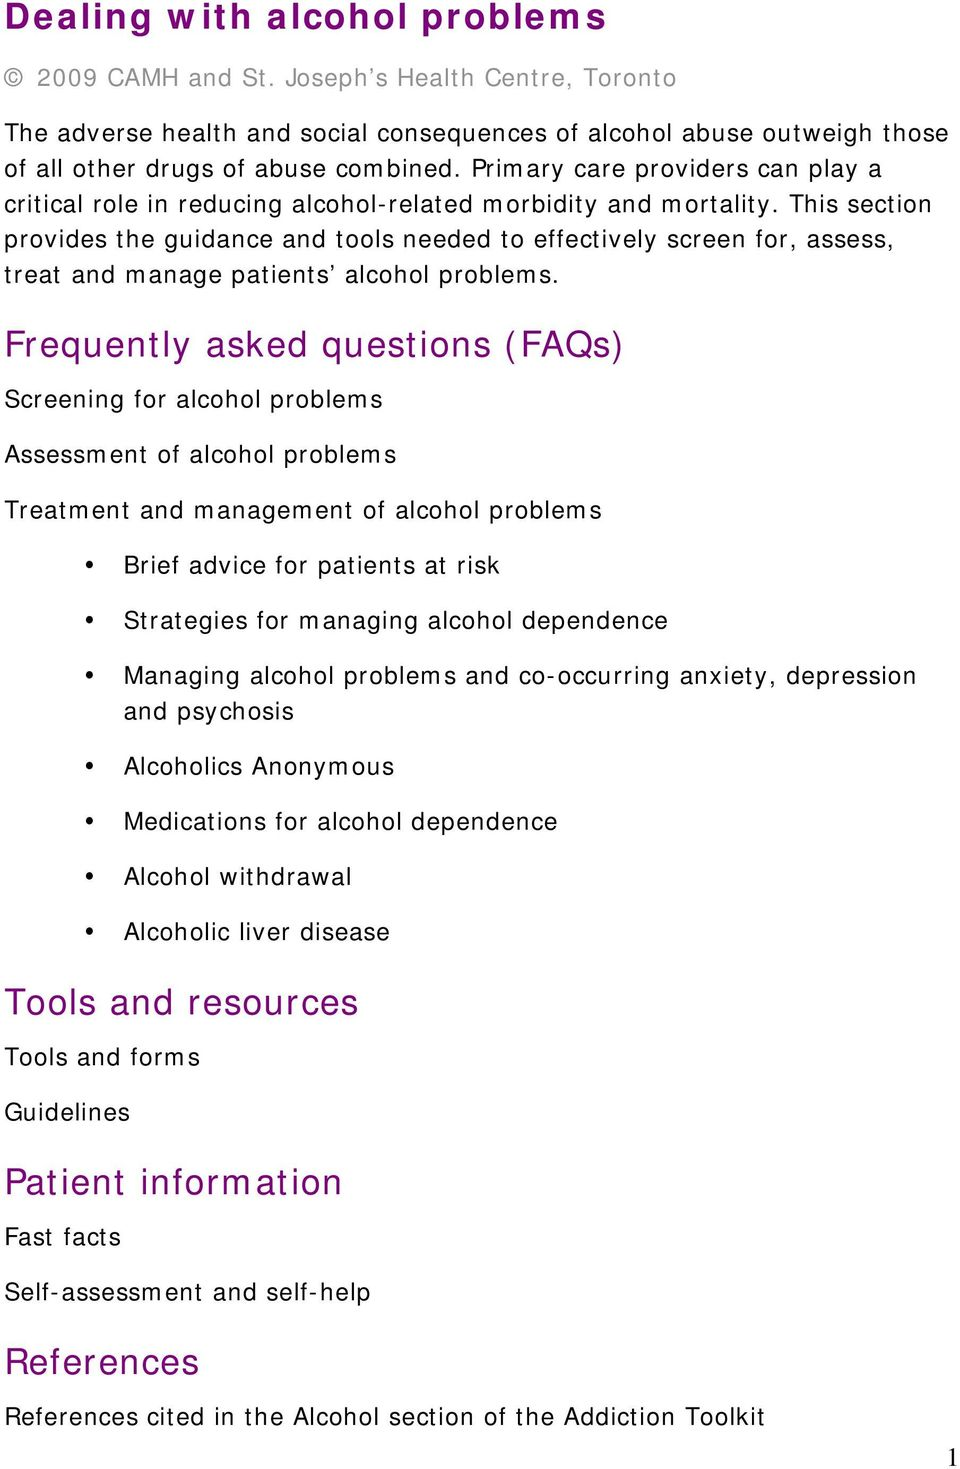 This section provides the guidance and tools needed to effectively screen for, assess, treat and manage patients alcohol problems.